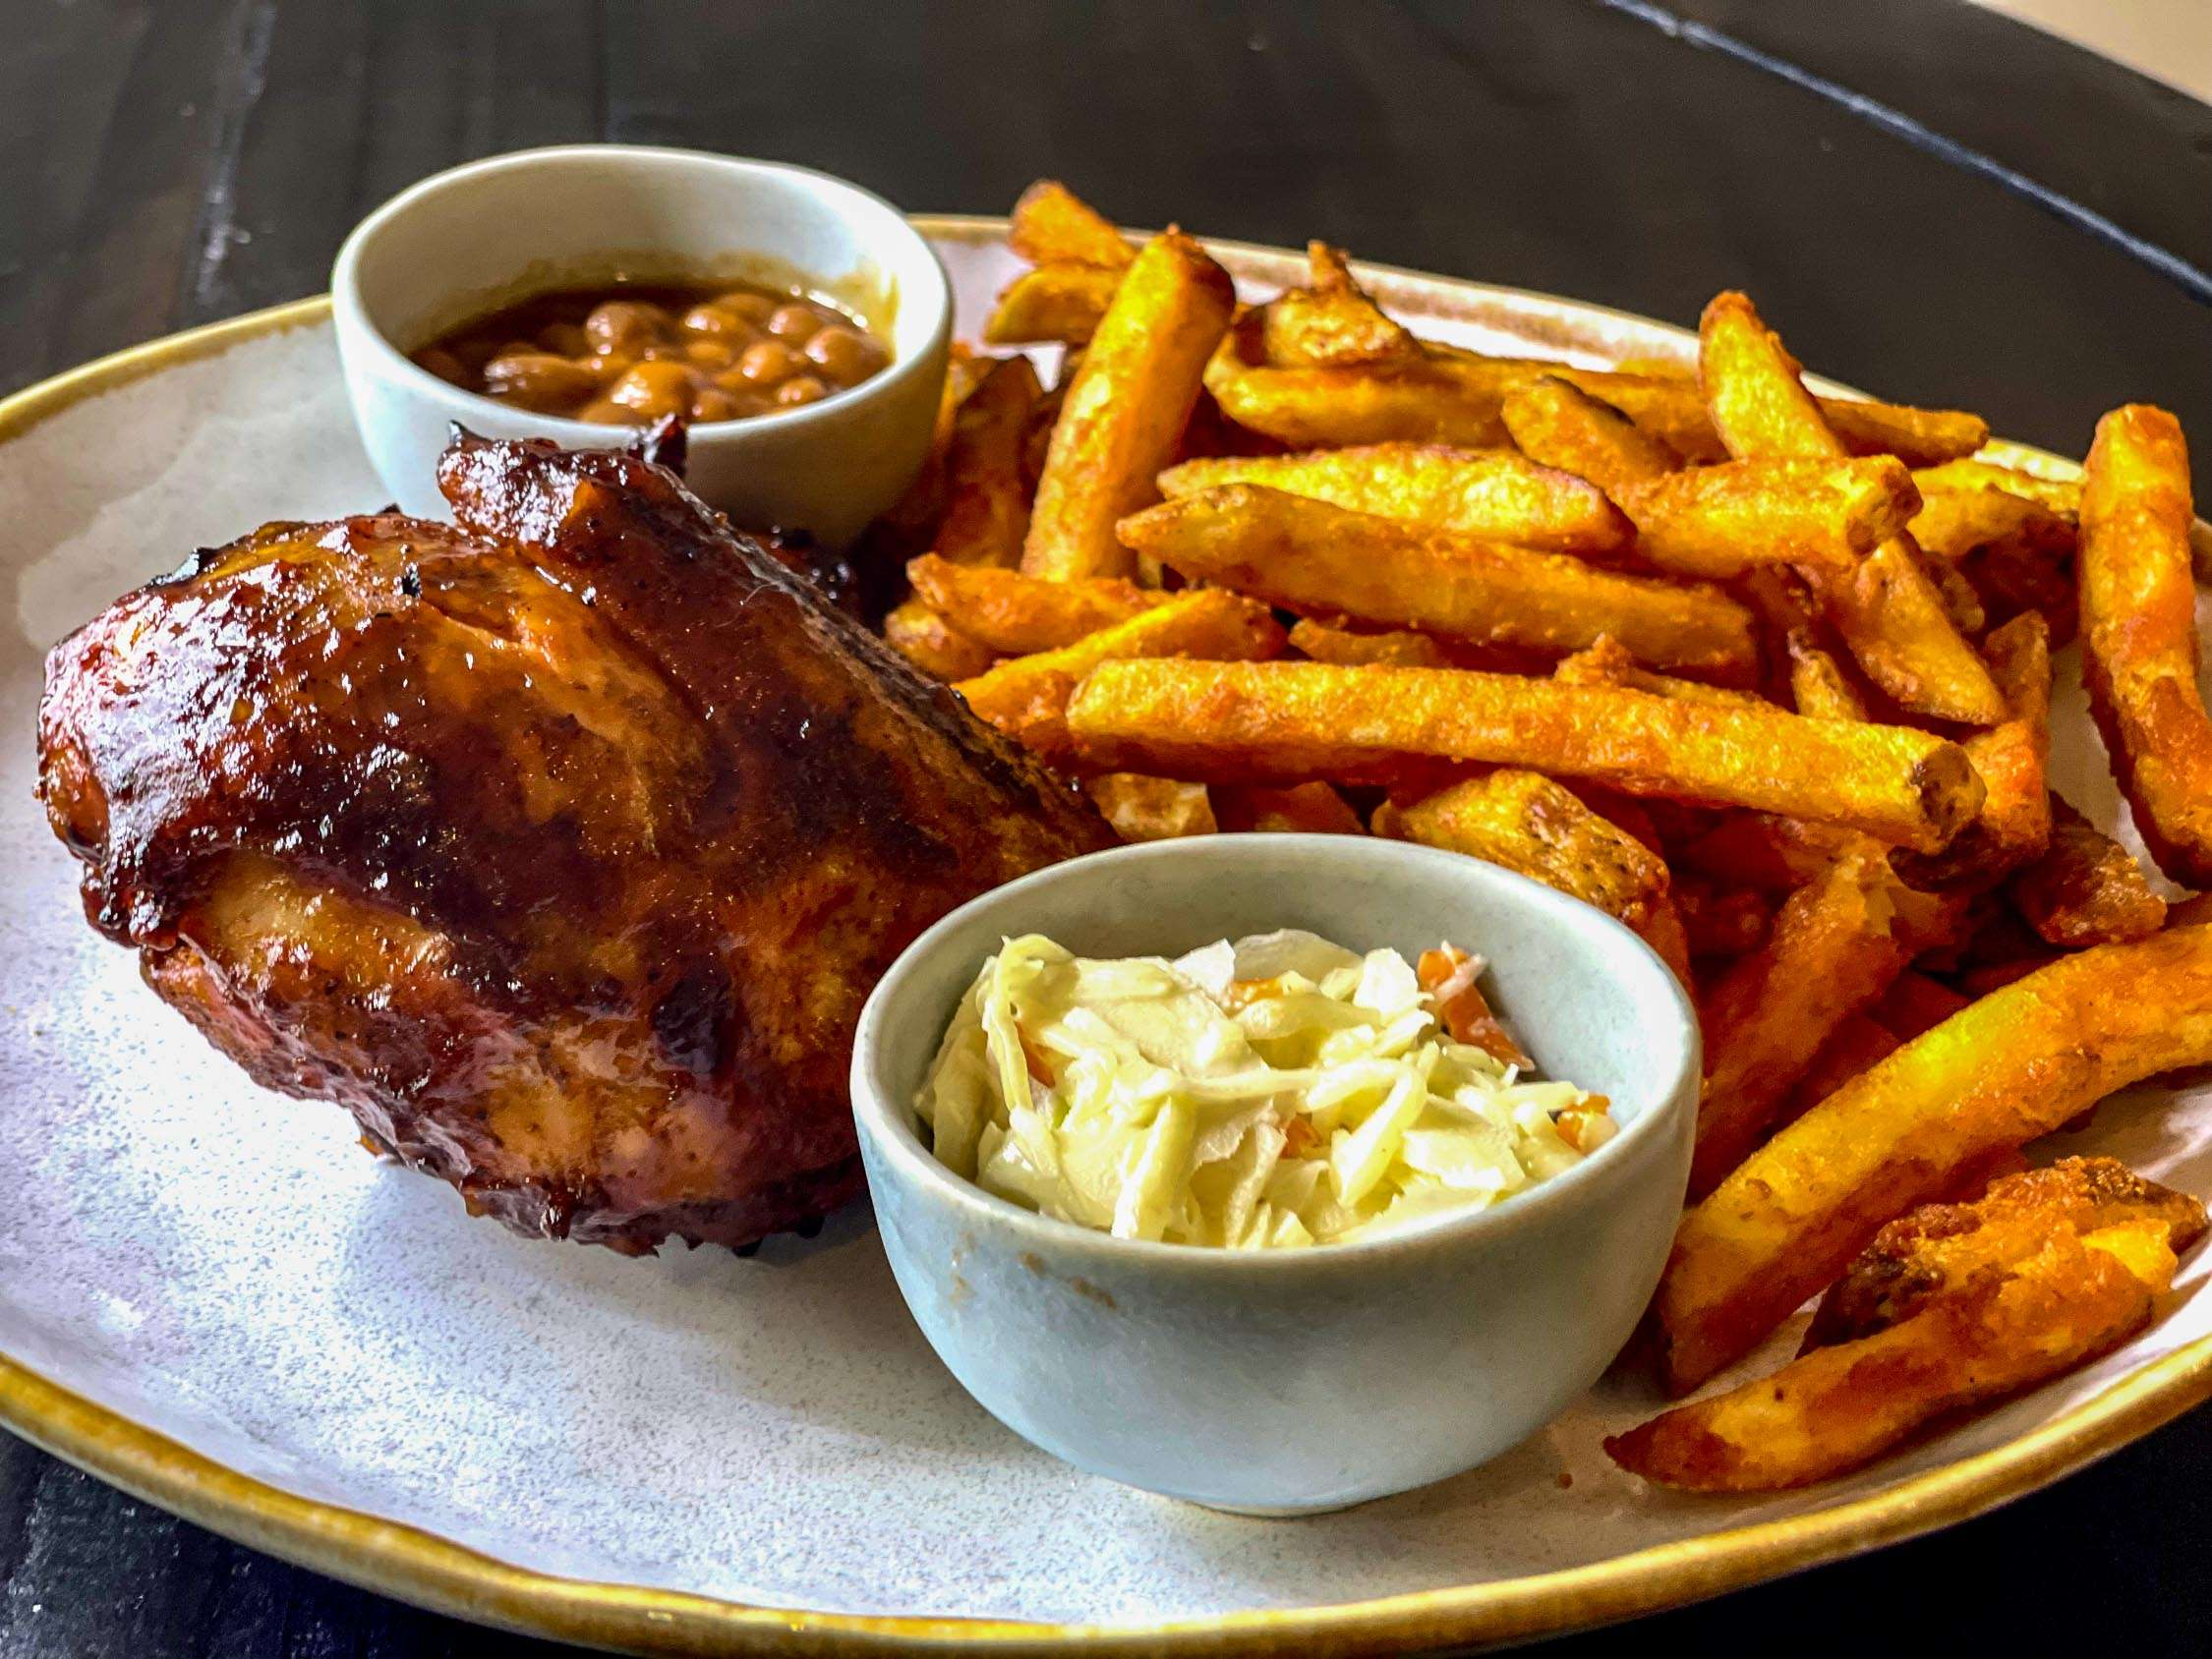 Smoked Chicken and Rodeo Fries - Bbq bandits